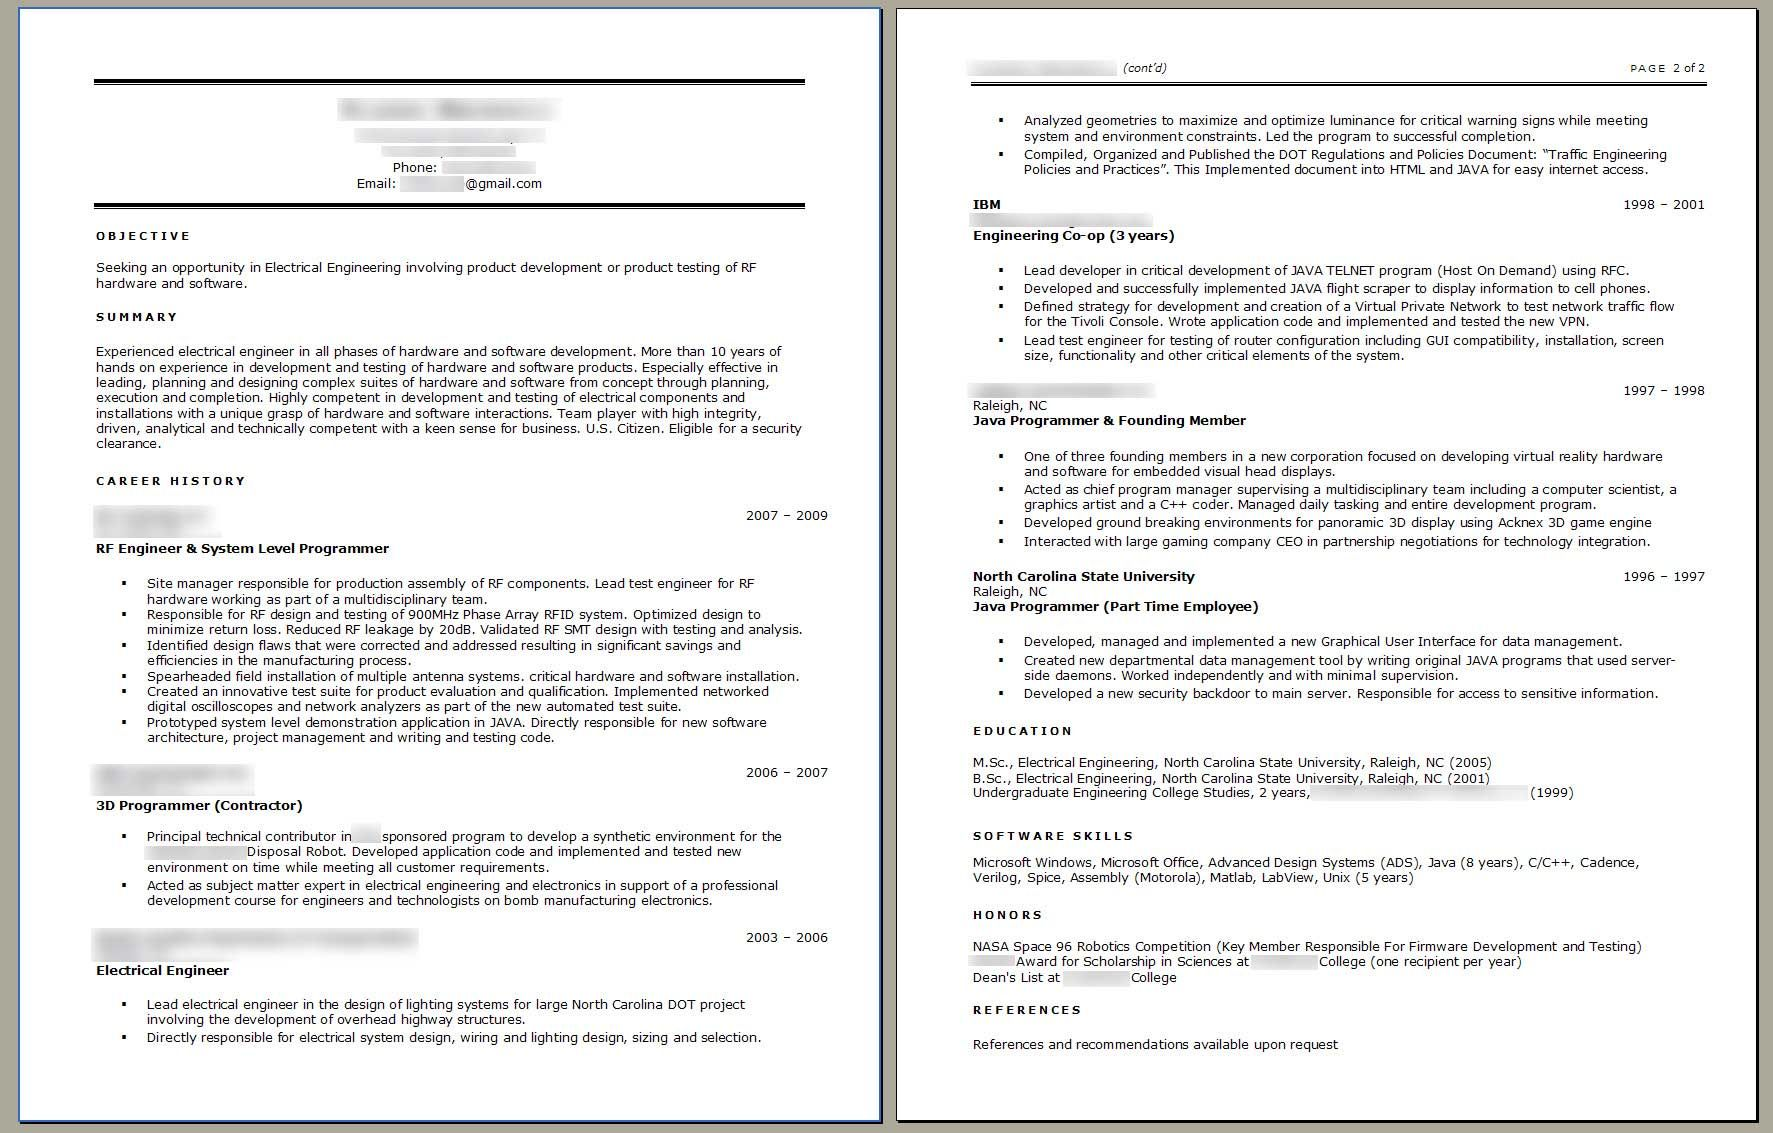 Electrical Engineer Resume Example Http Www Resumecareer Info